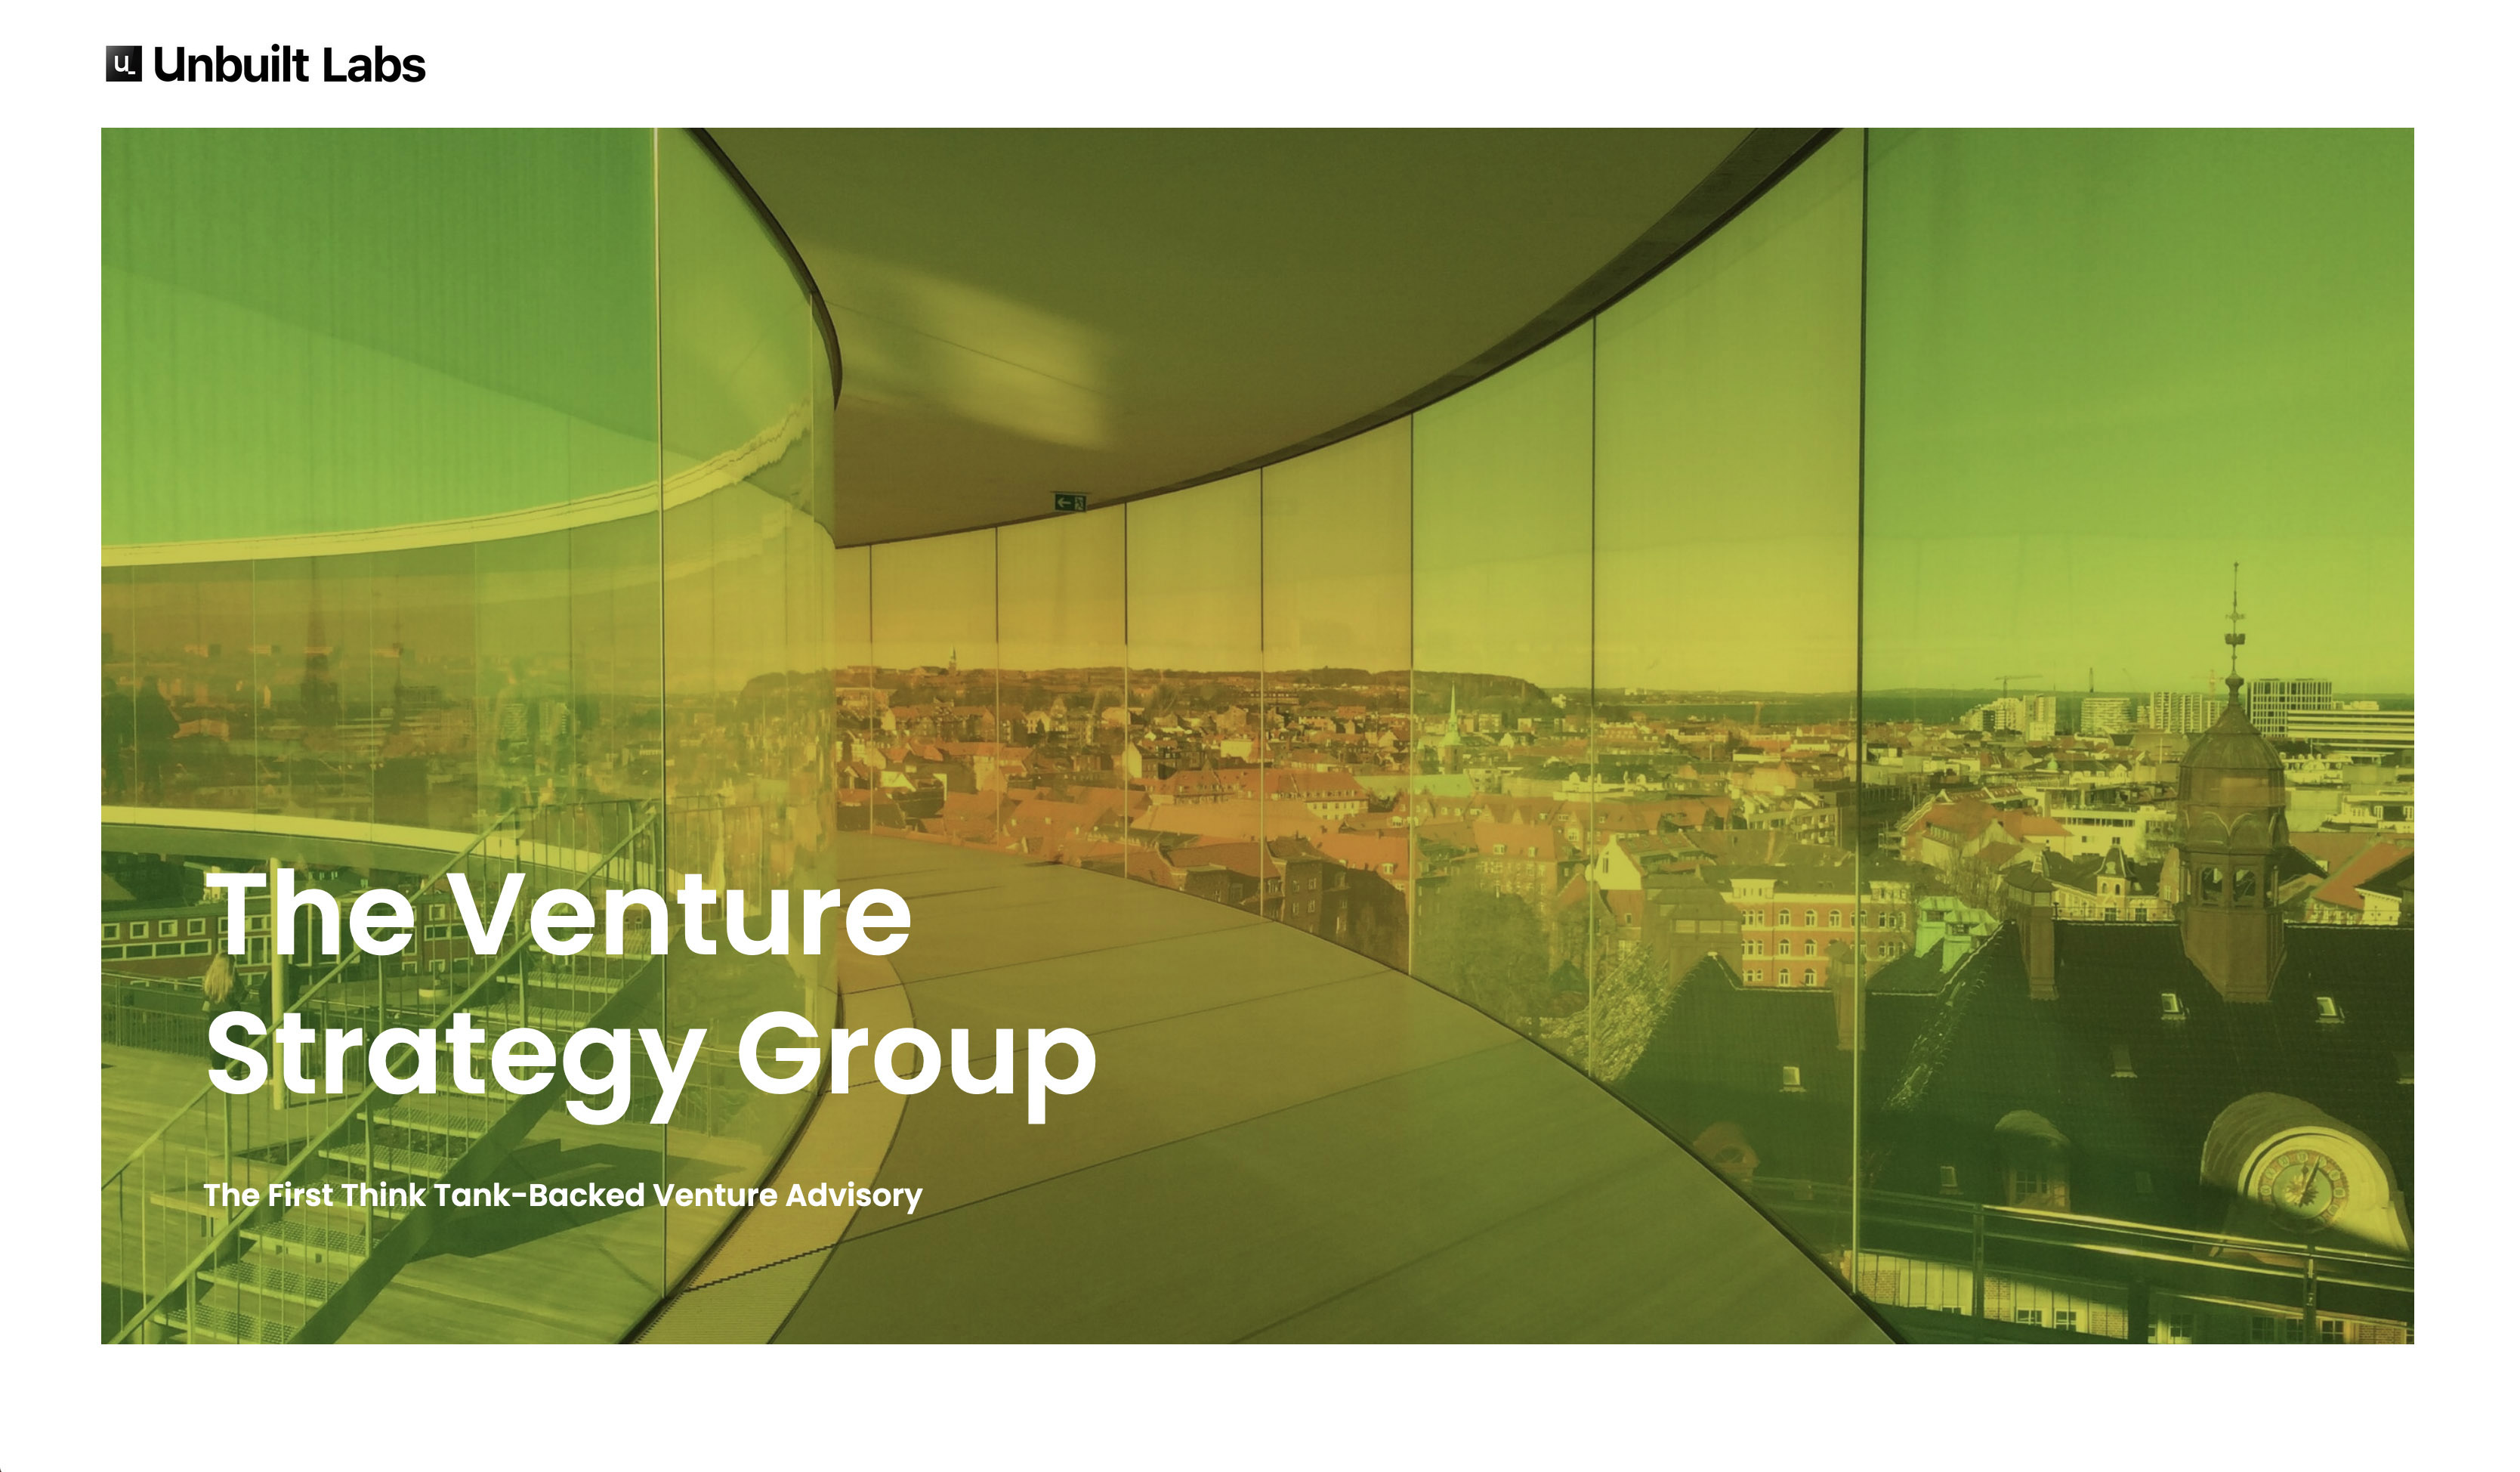 The Venture Strategy Group